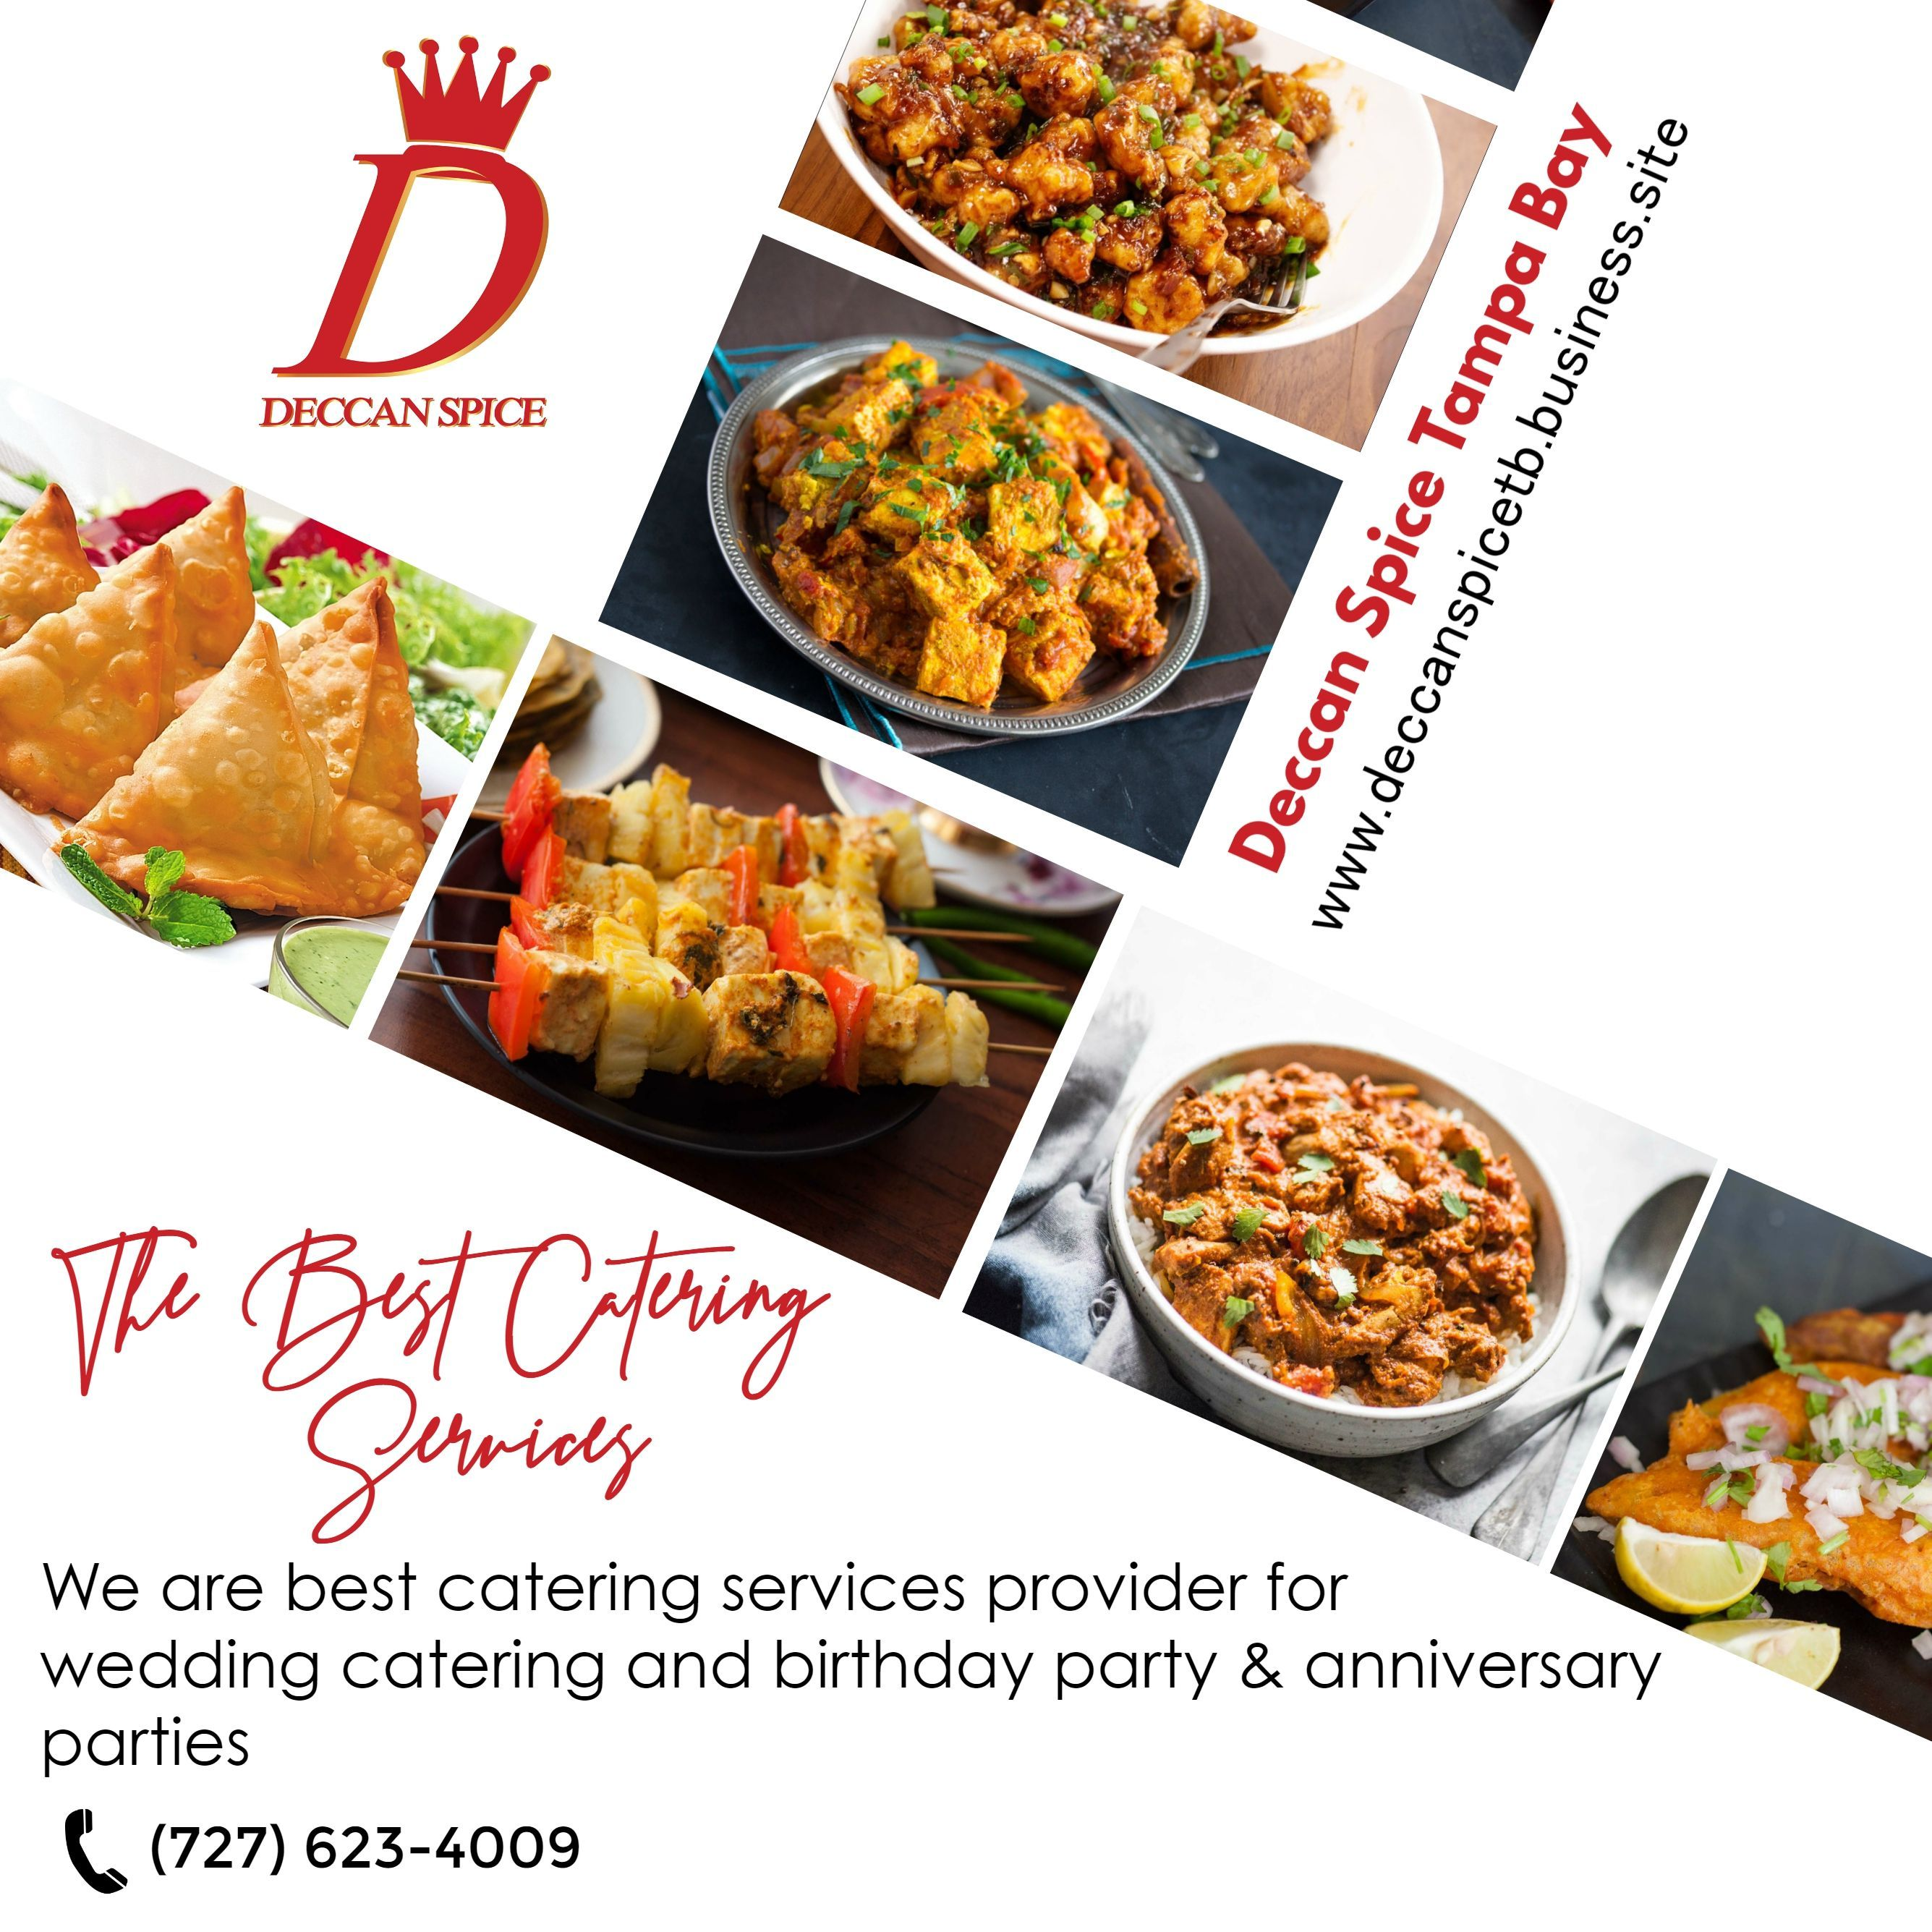 We Are Best Catering Services Provider For Wedding Catering And Birthday Party Anniversary Parties 72 In 2020 Veg Restaurant Wedding Catering Catering Services